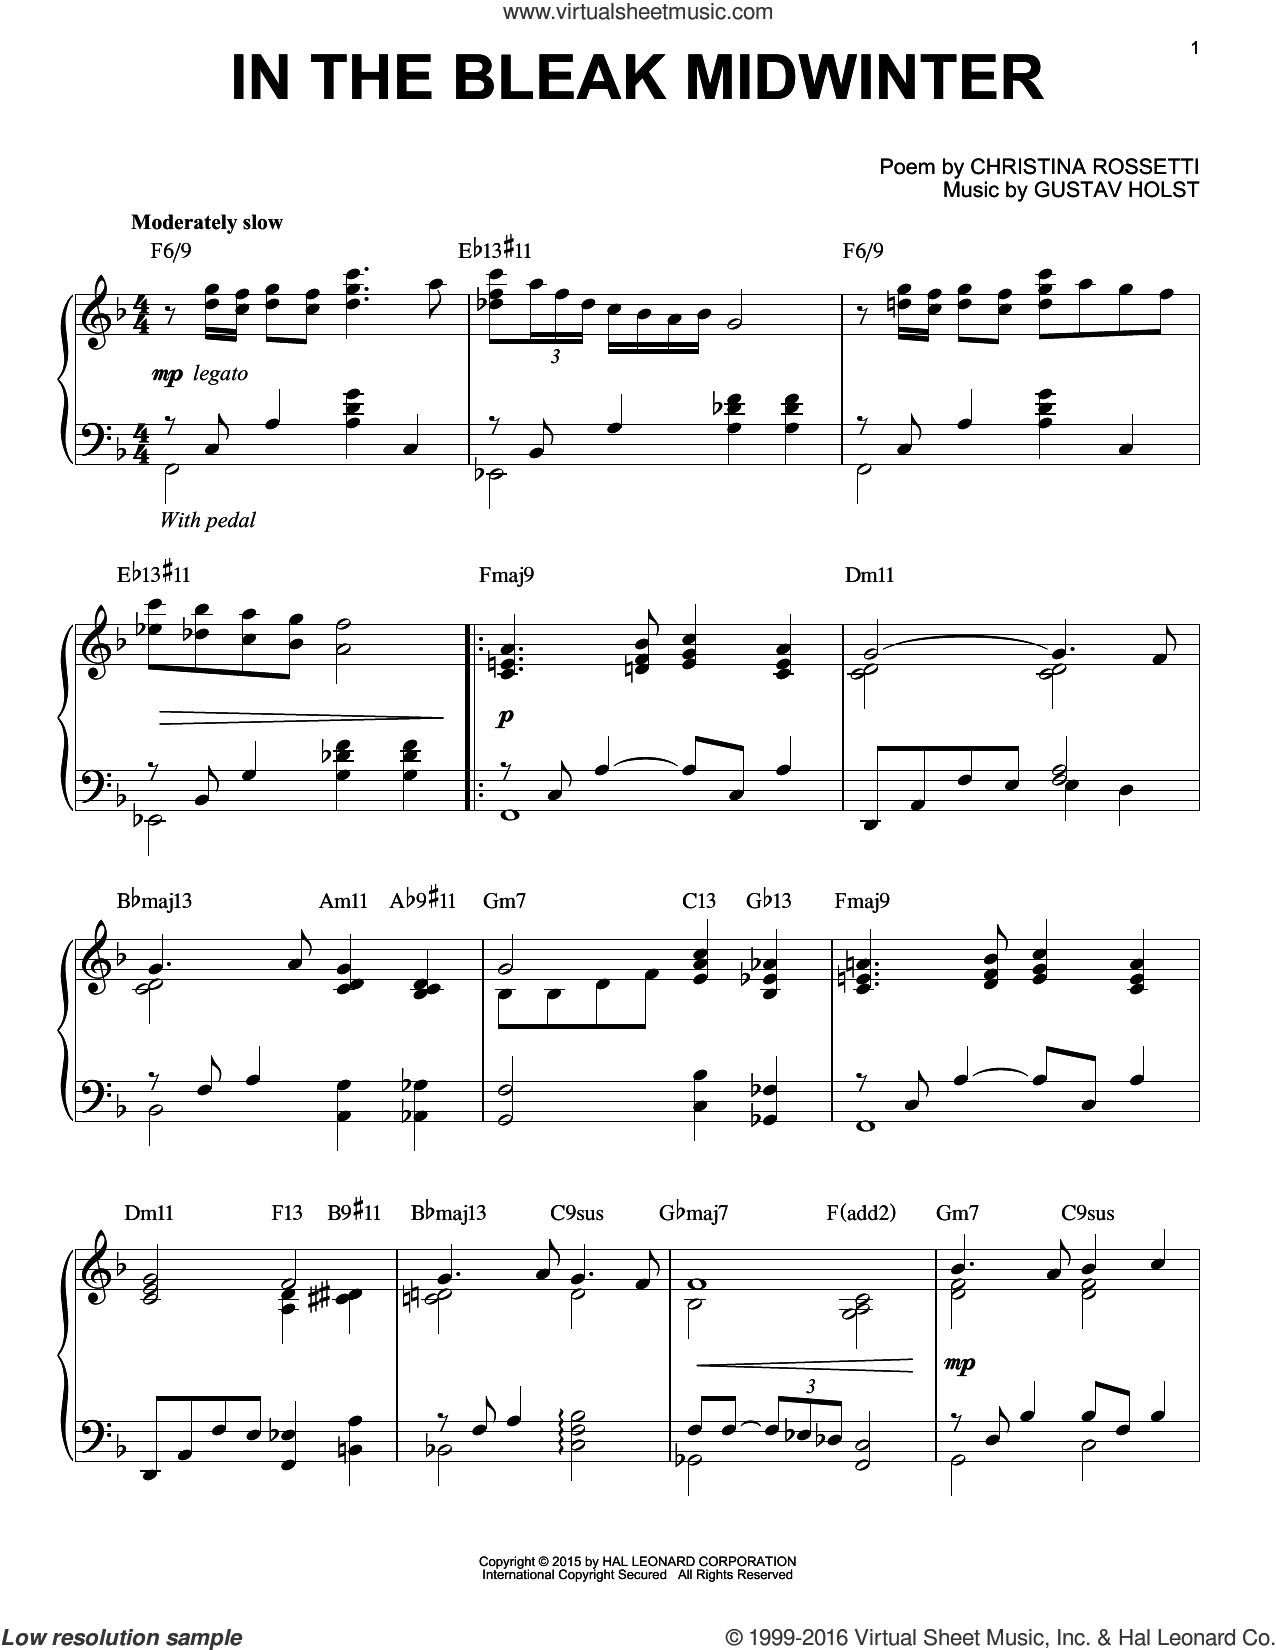 In The Bleak Midwinter [Jazz version] (arr. Brent Edstrom) sheet music for piano solo by Gustav Holst and Christina Rossetti, intermediate skill level